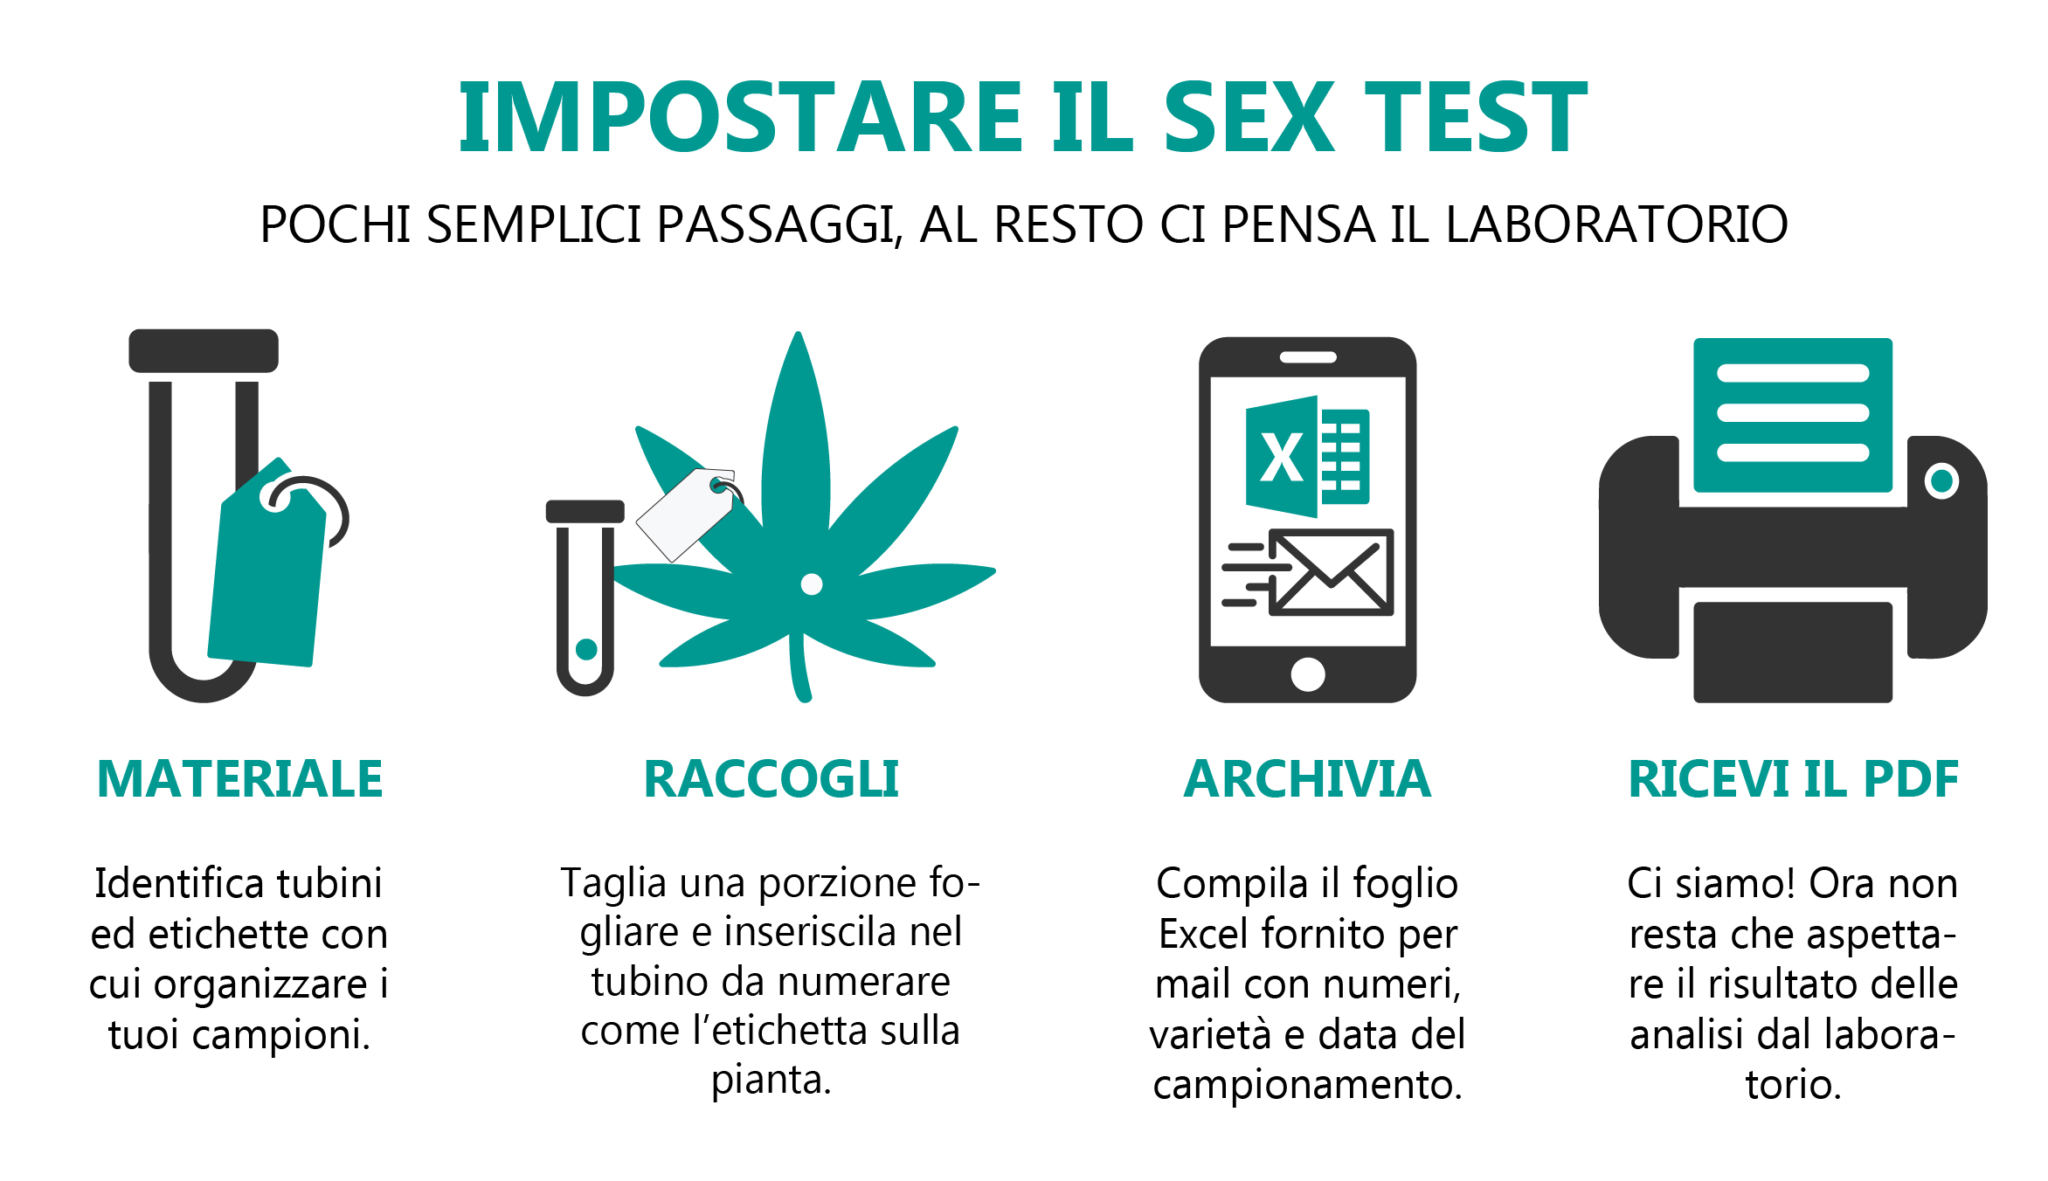 adempimenti-sex-test-analisi-genere-piante-cannabis